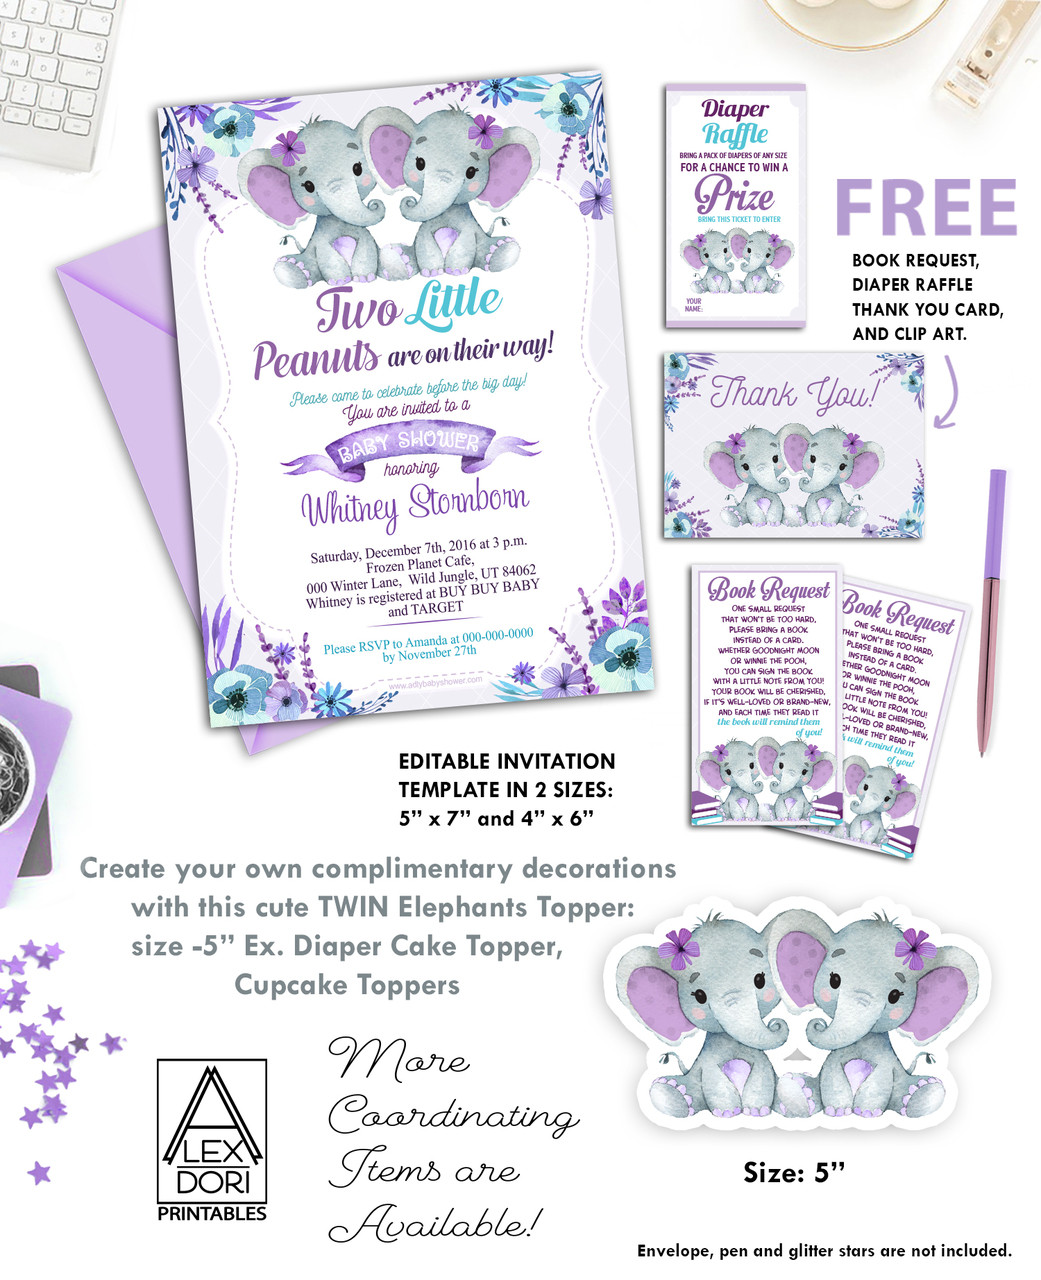 photograph regarding Invitations Printable titled Dual Elephants Pink Turquoise Kid Shower Invitation Printable Invitation - Peanuts Invite-Woman Elephant Little one Shower-Cost-free Diaper Raffle